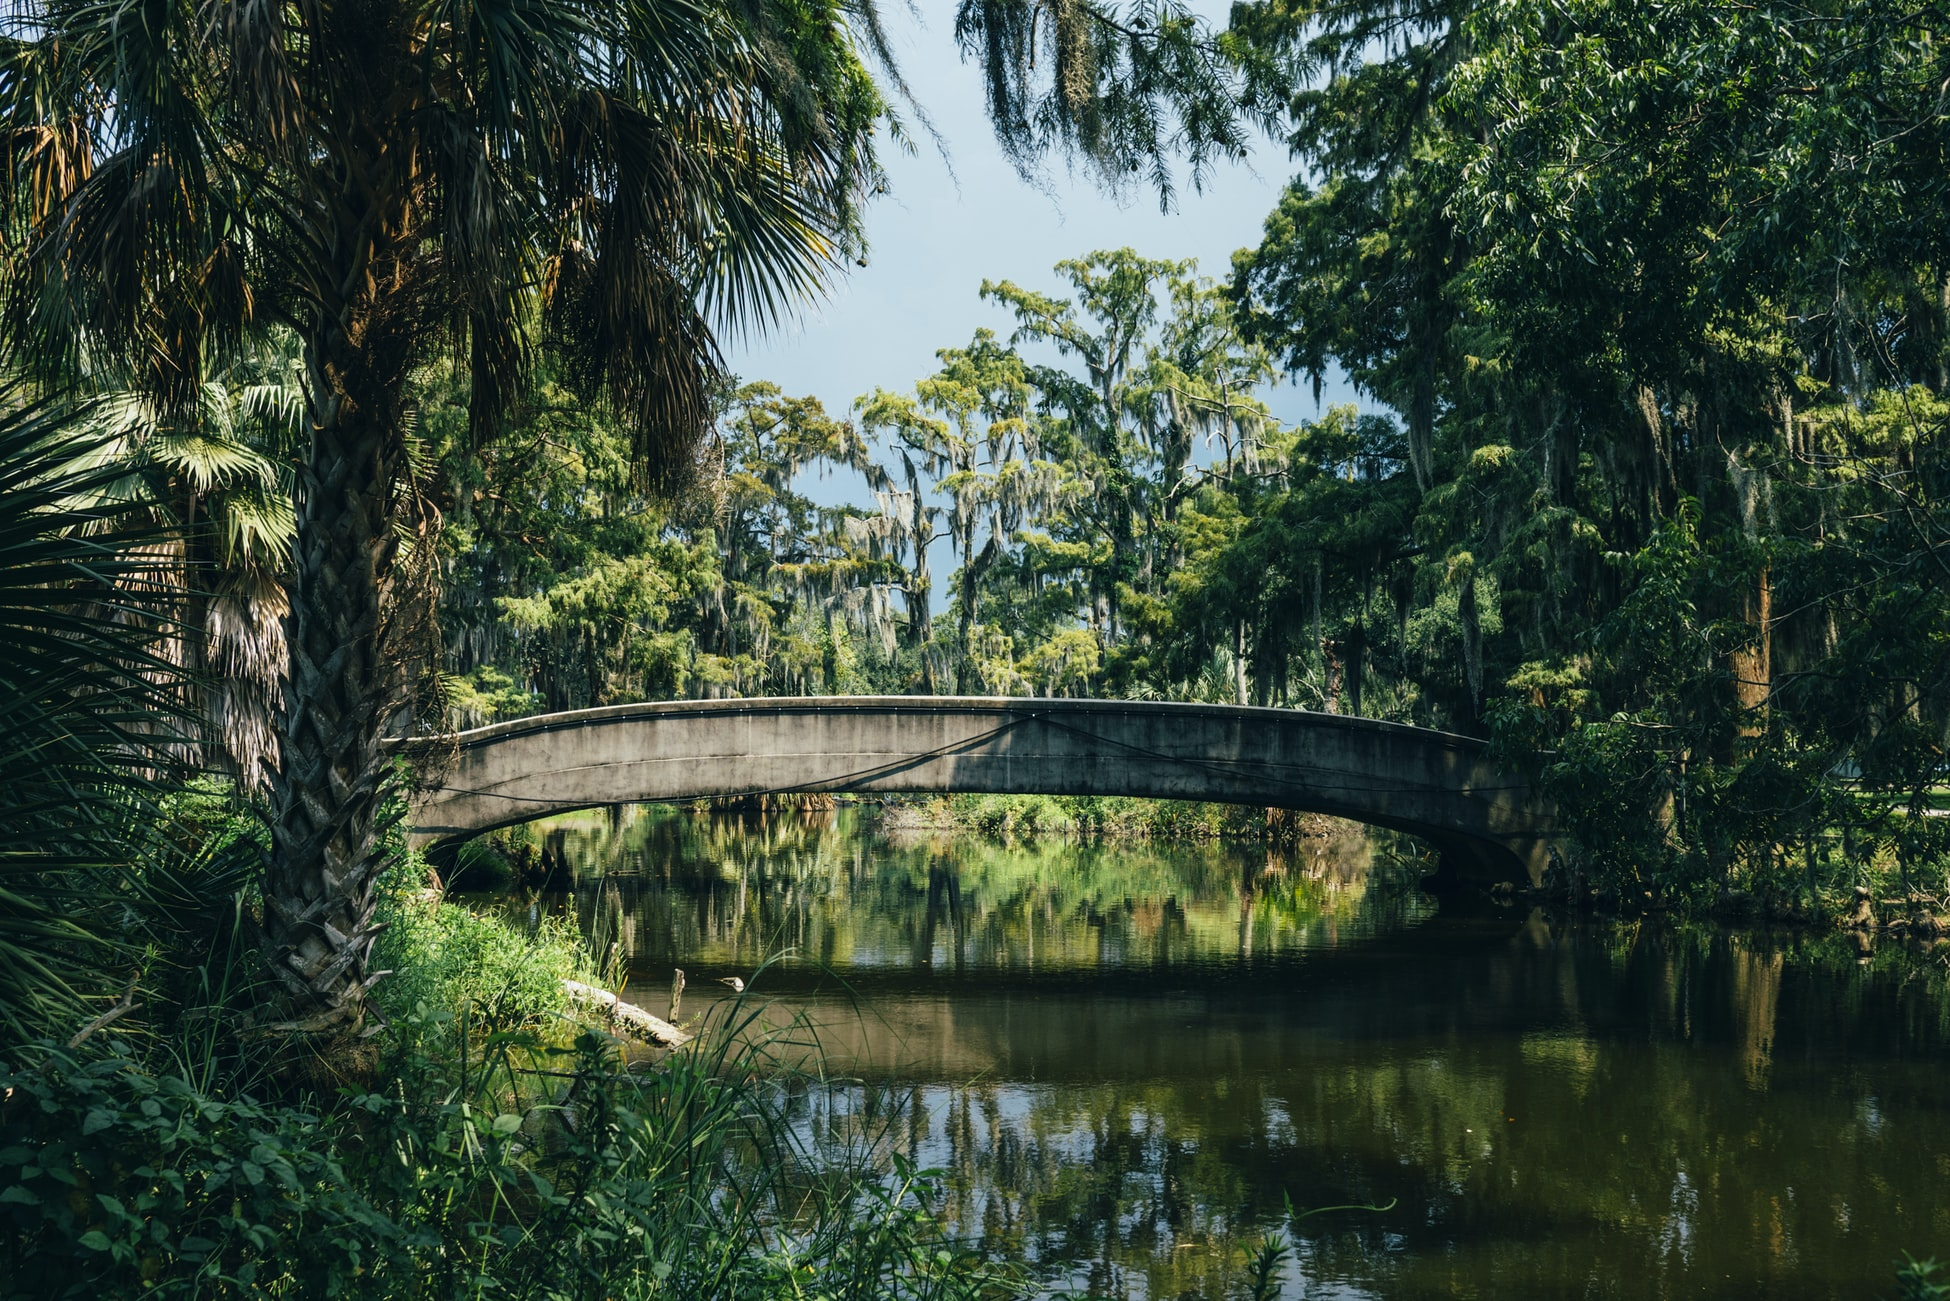 a bridge in city park in New Orleans